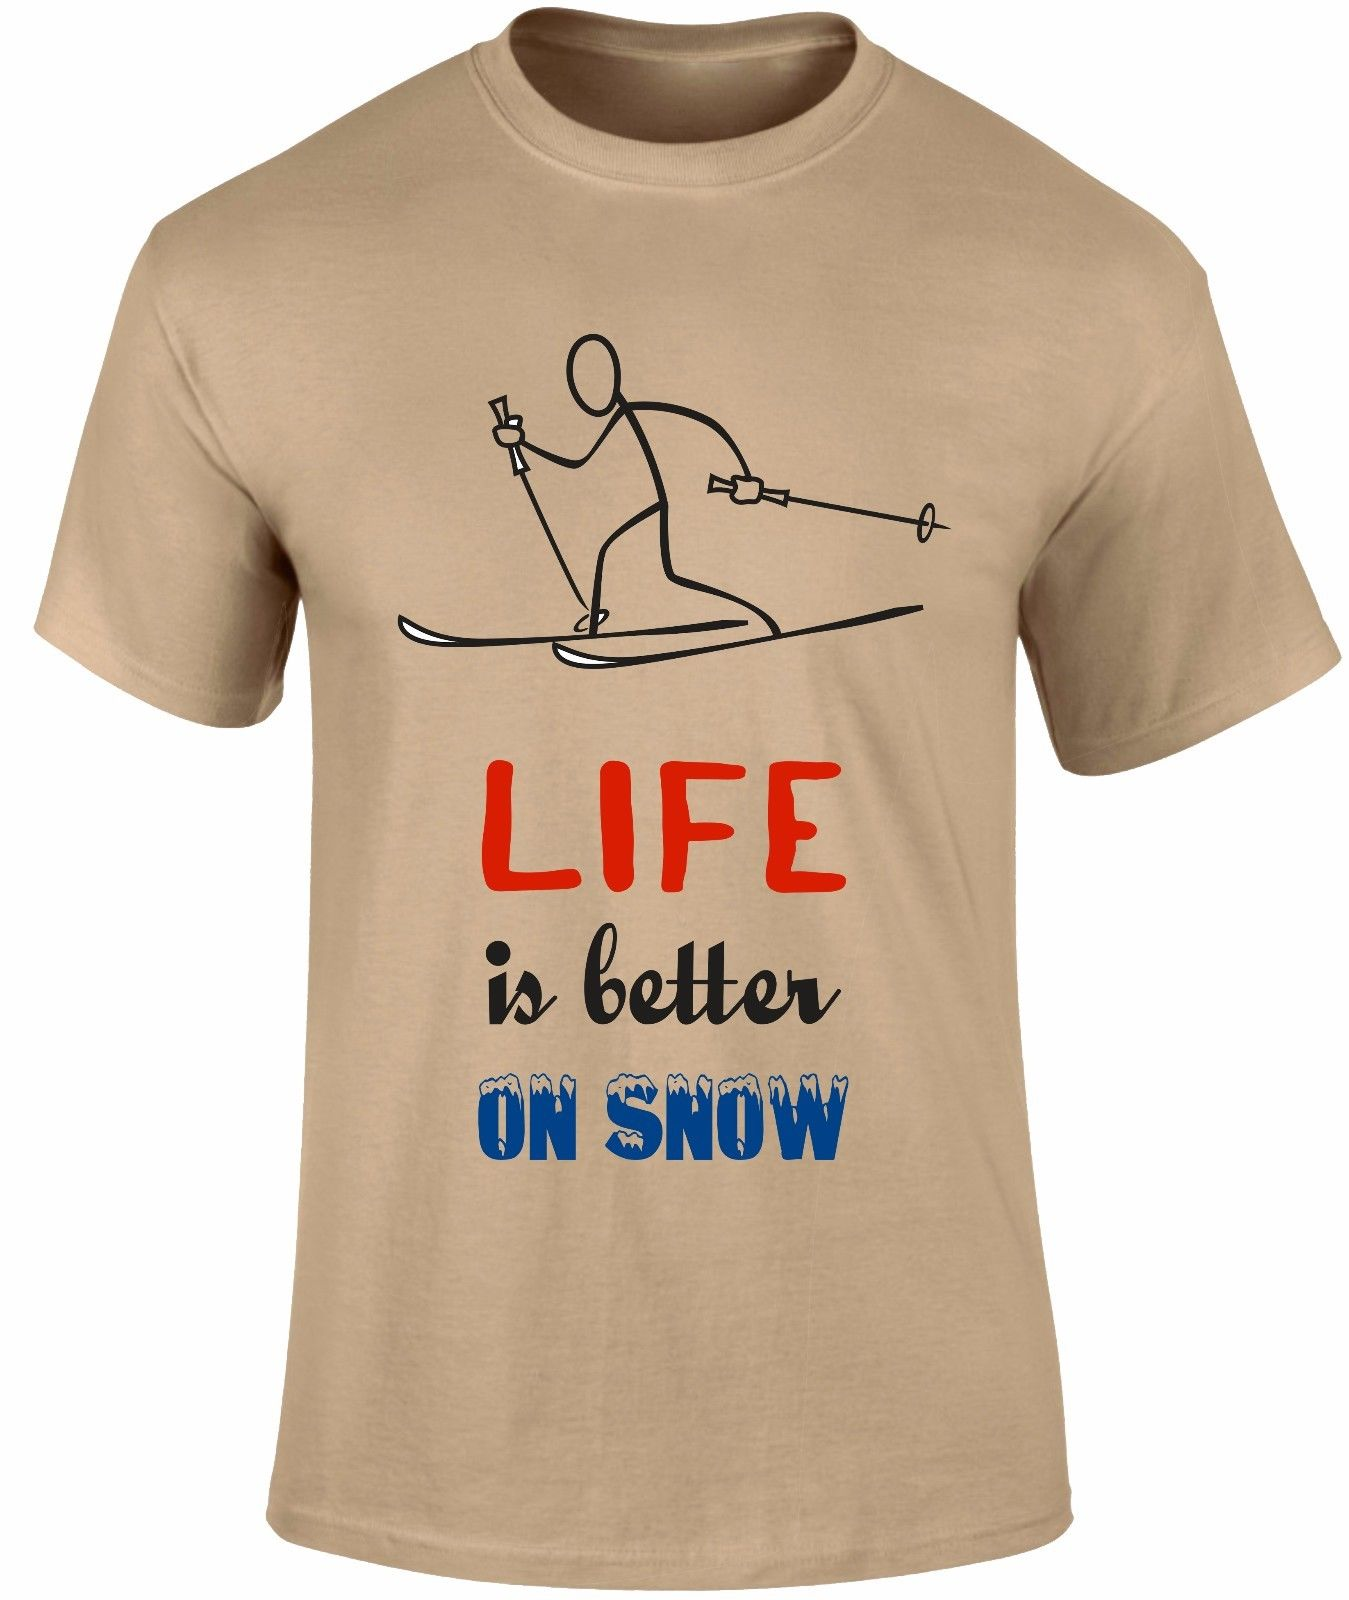 Life is better On Snow SkiinSports Game Slogan Funny T-Shirt T Shirt Top Gift